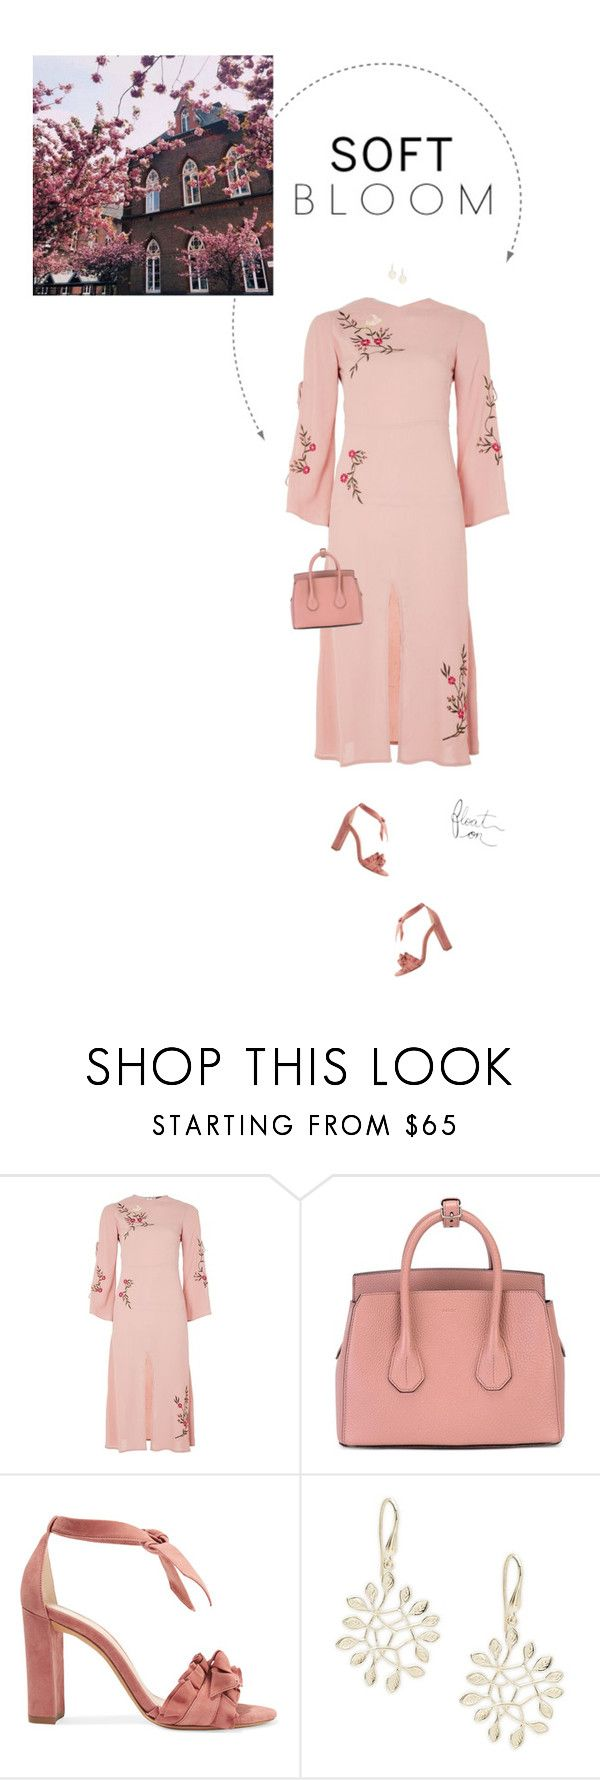 """""""Pink   Floral Embroidery."""" by xabbielou ❤ liked on Polyvore featuring Topshop, Bally, Alexandre Birman, Saks Fifth Avenue and GET LOST"""